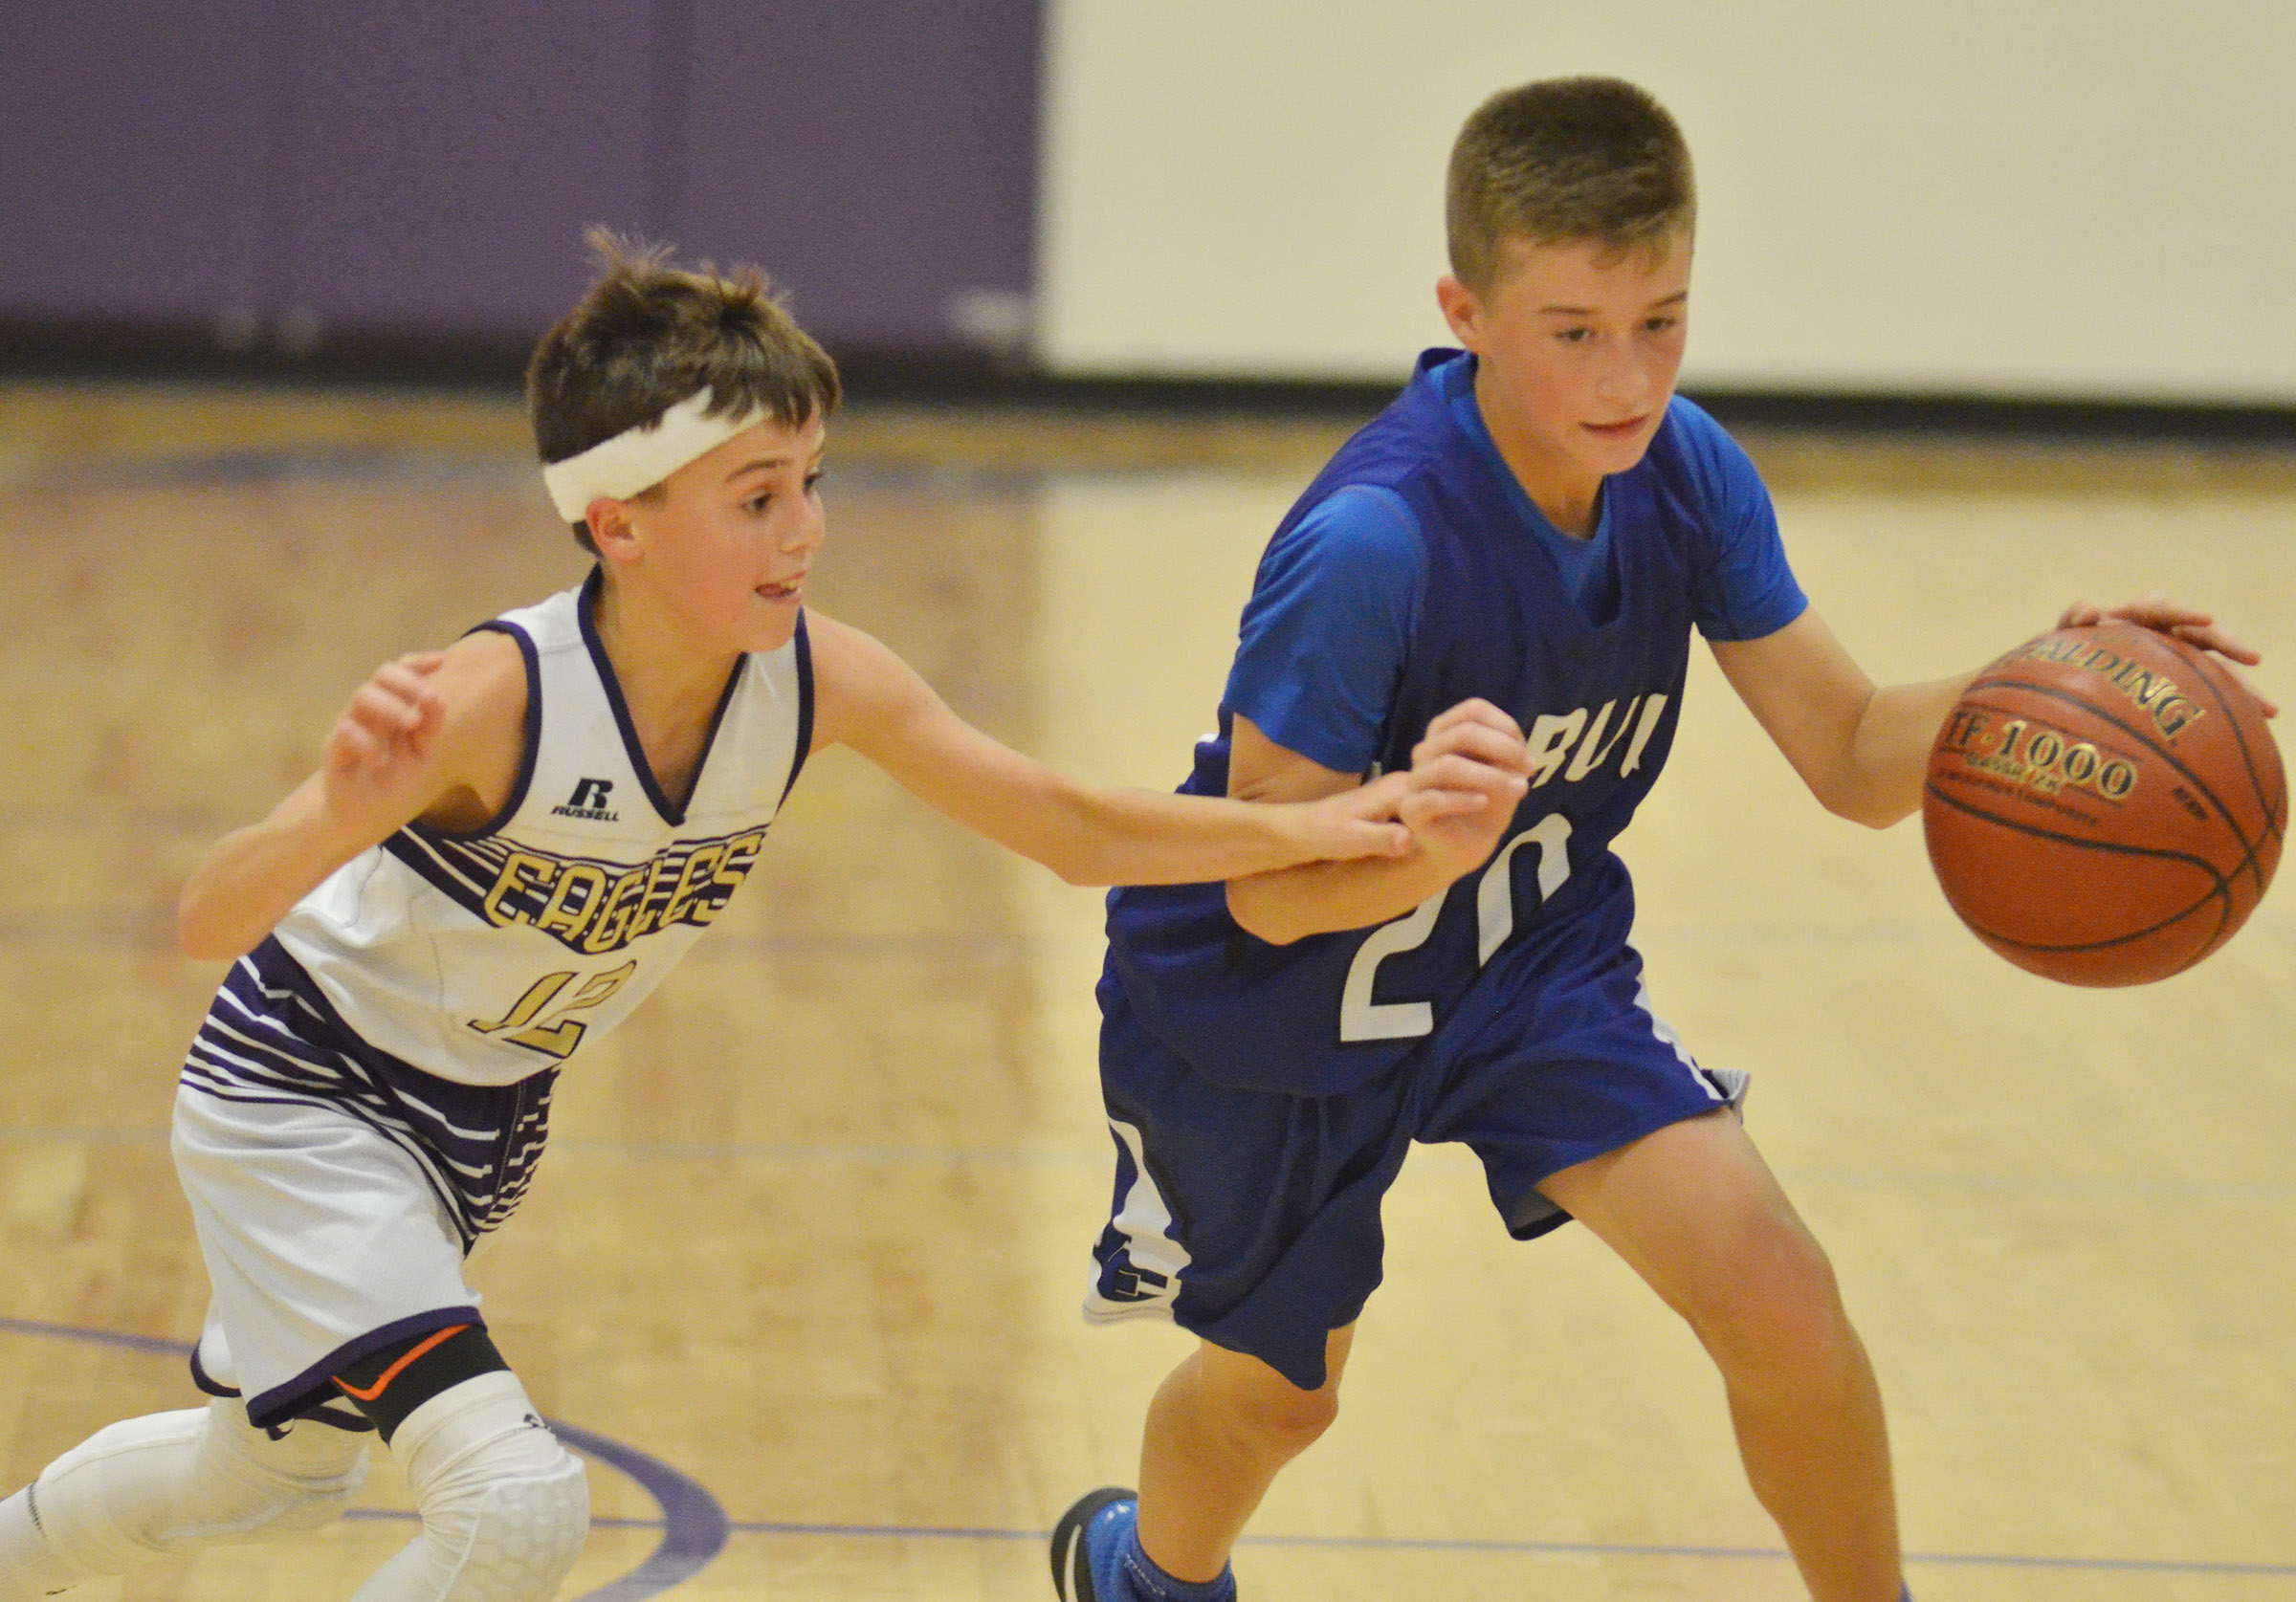 CMS seventh-grader Chase Hord plays defense.